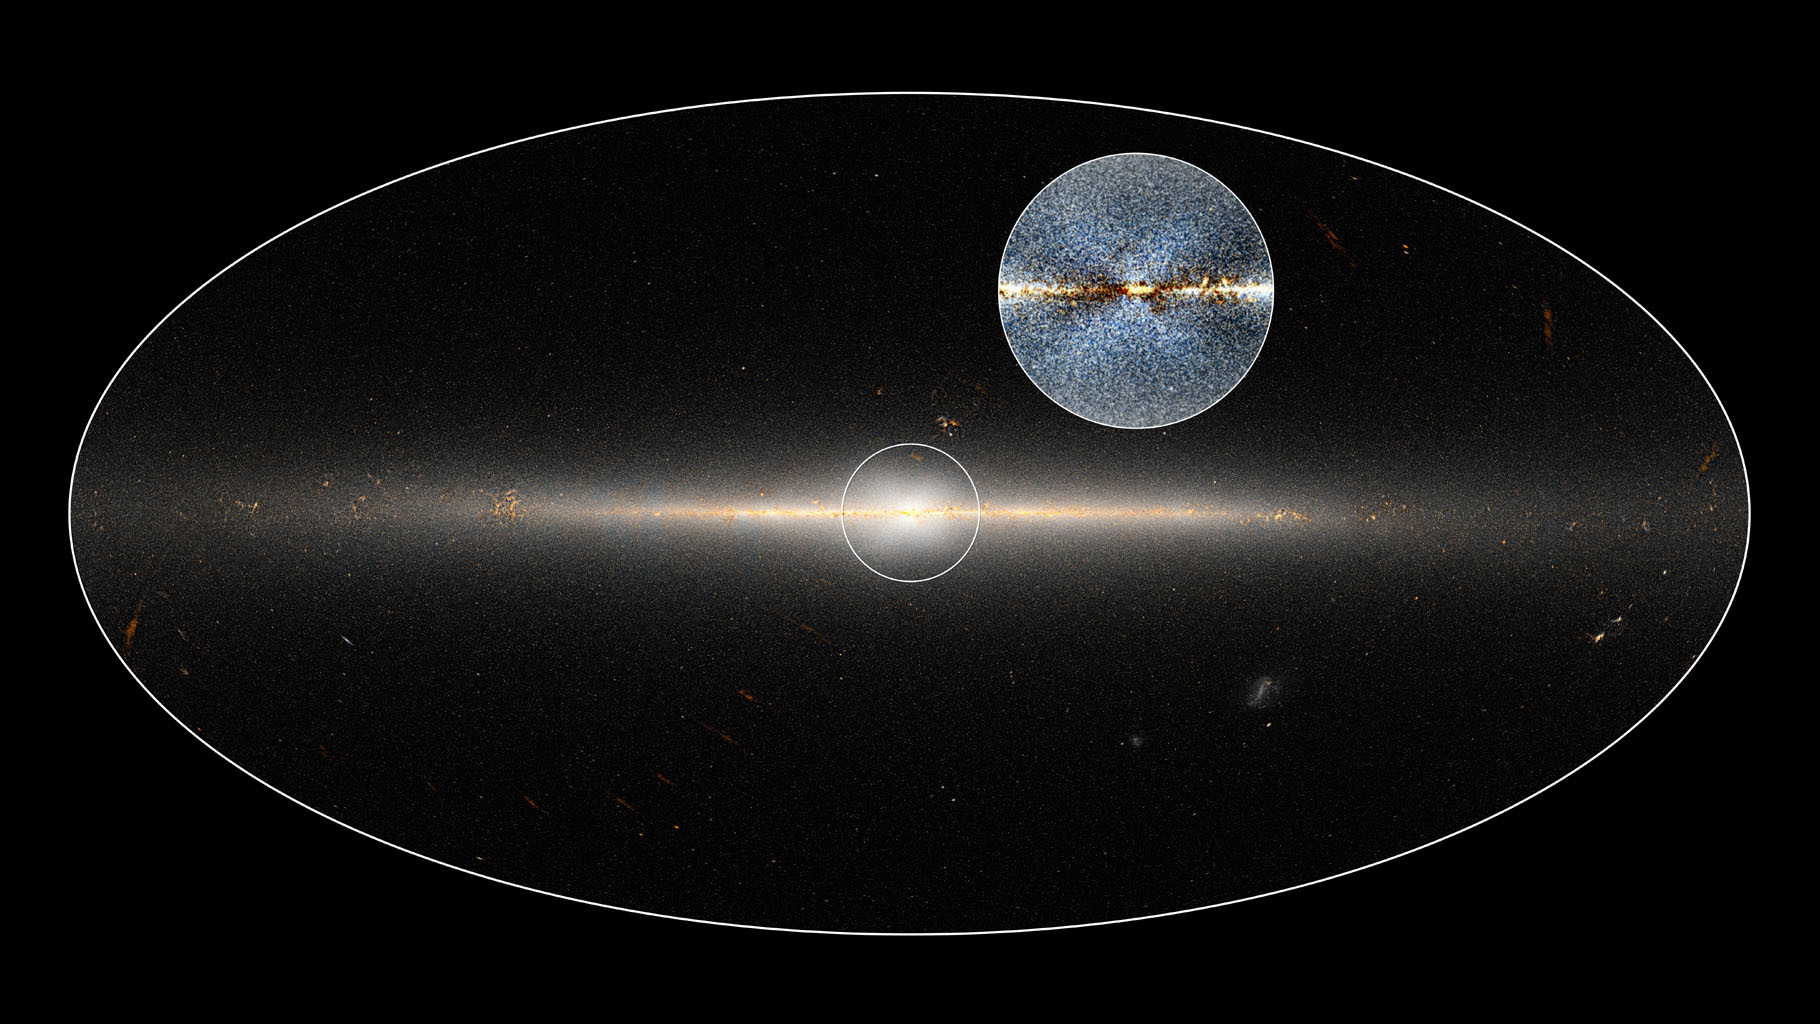 WISE all-sky image of Milky Way Galaxy. The circle is centred on the Galaxy's central region. The inset shows an enhanced version of the same region that shows a clearer view of the X-shaped structure. Illustration credit: NASA/JPL-Caltech; D. Lang/Dunlap Institute.